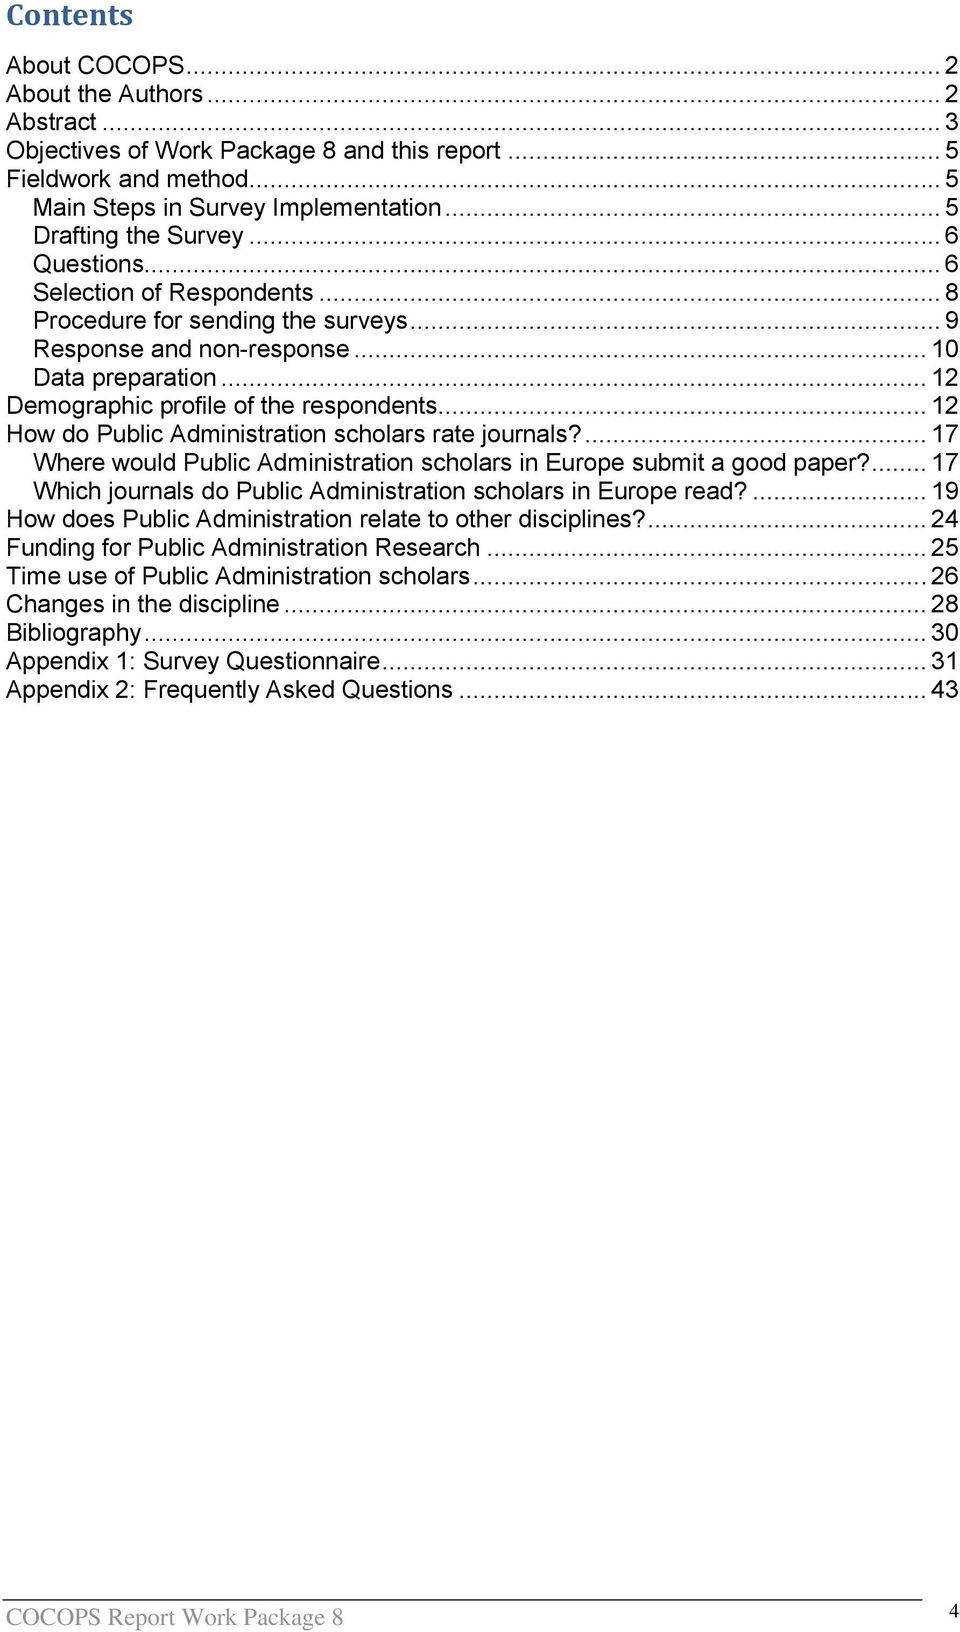 .. 12 How do Public Administration scholars rate journals?... 17 Where would Public Administration scholars in Europe submit a good paper?